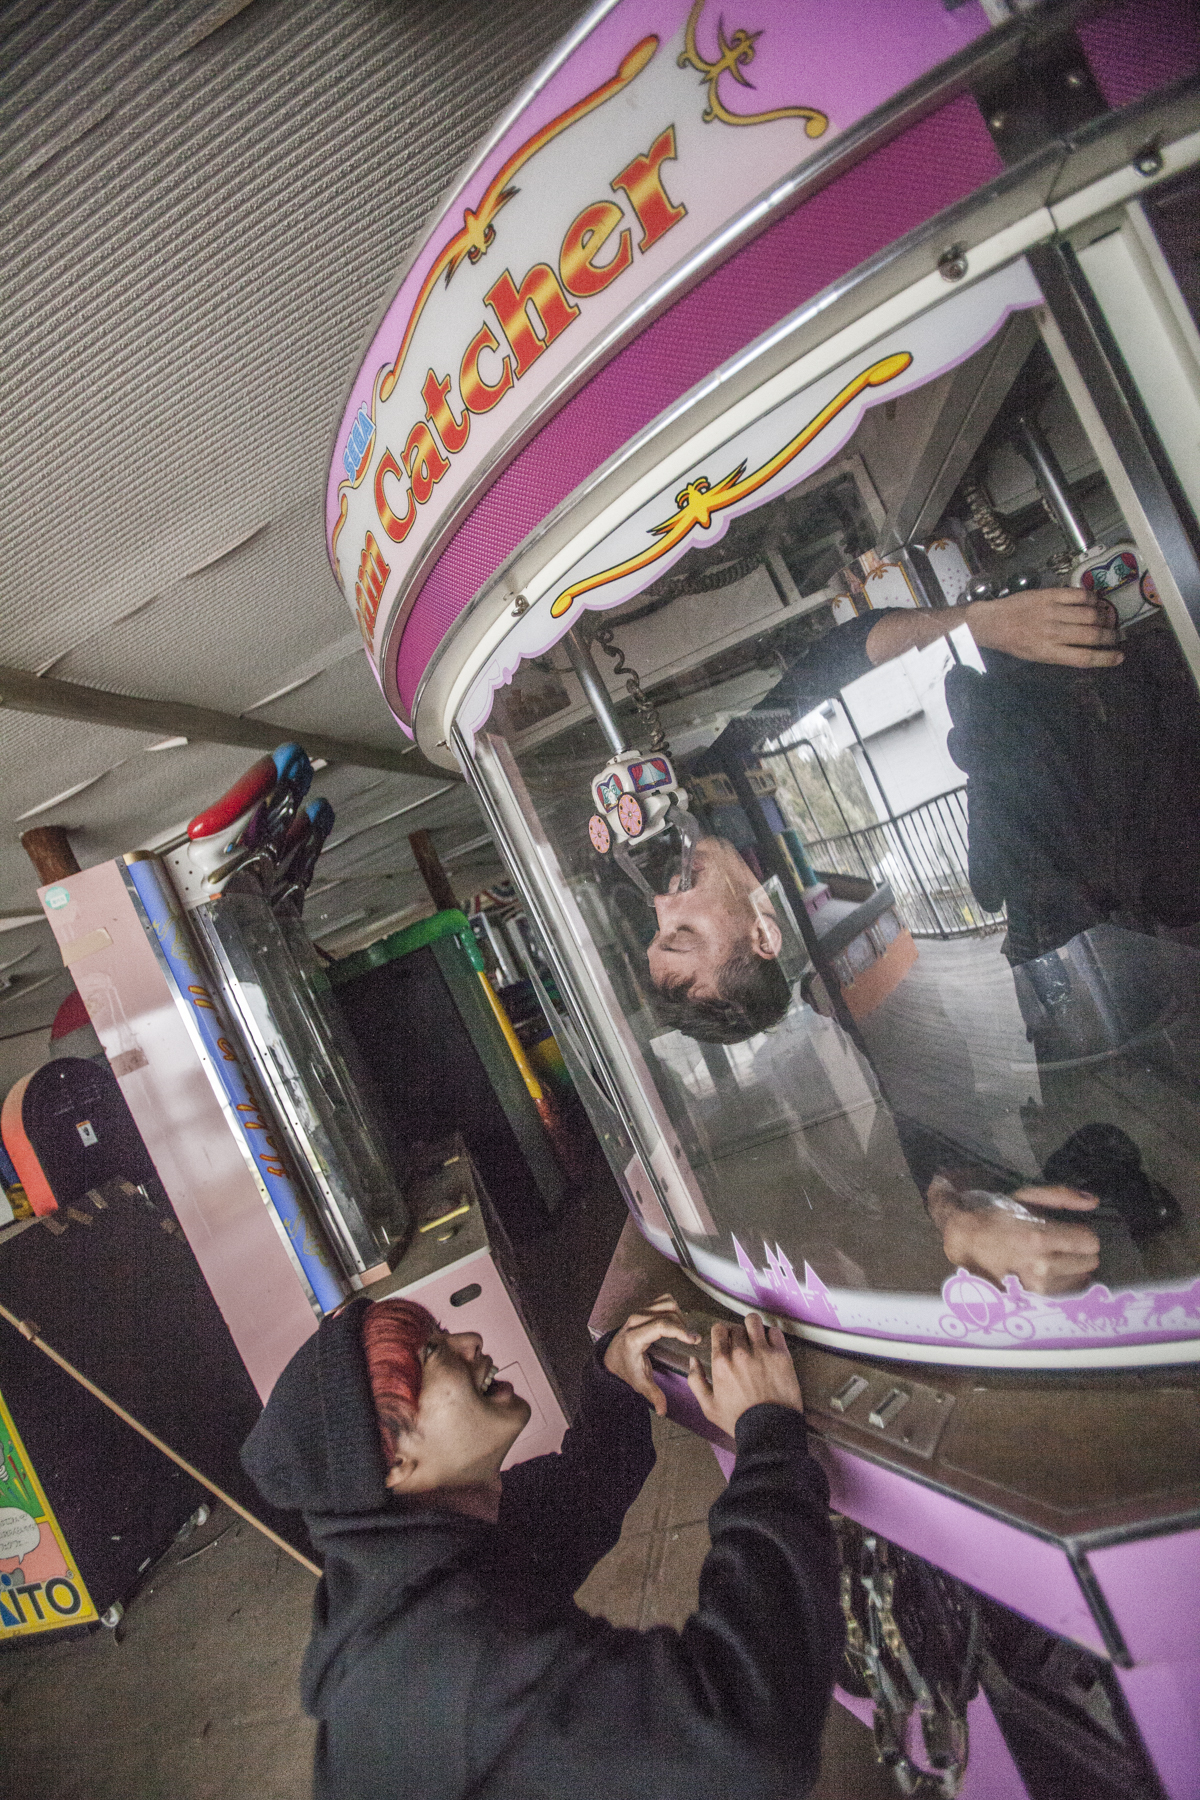 Arcade games big enough to fit in.